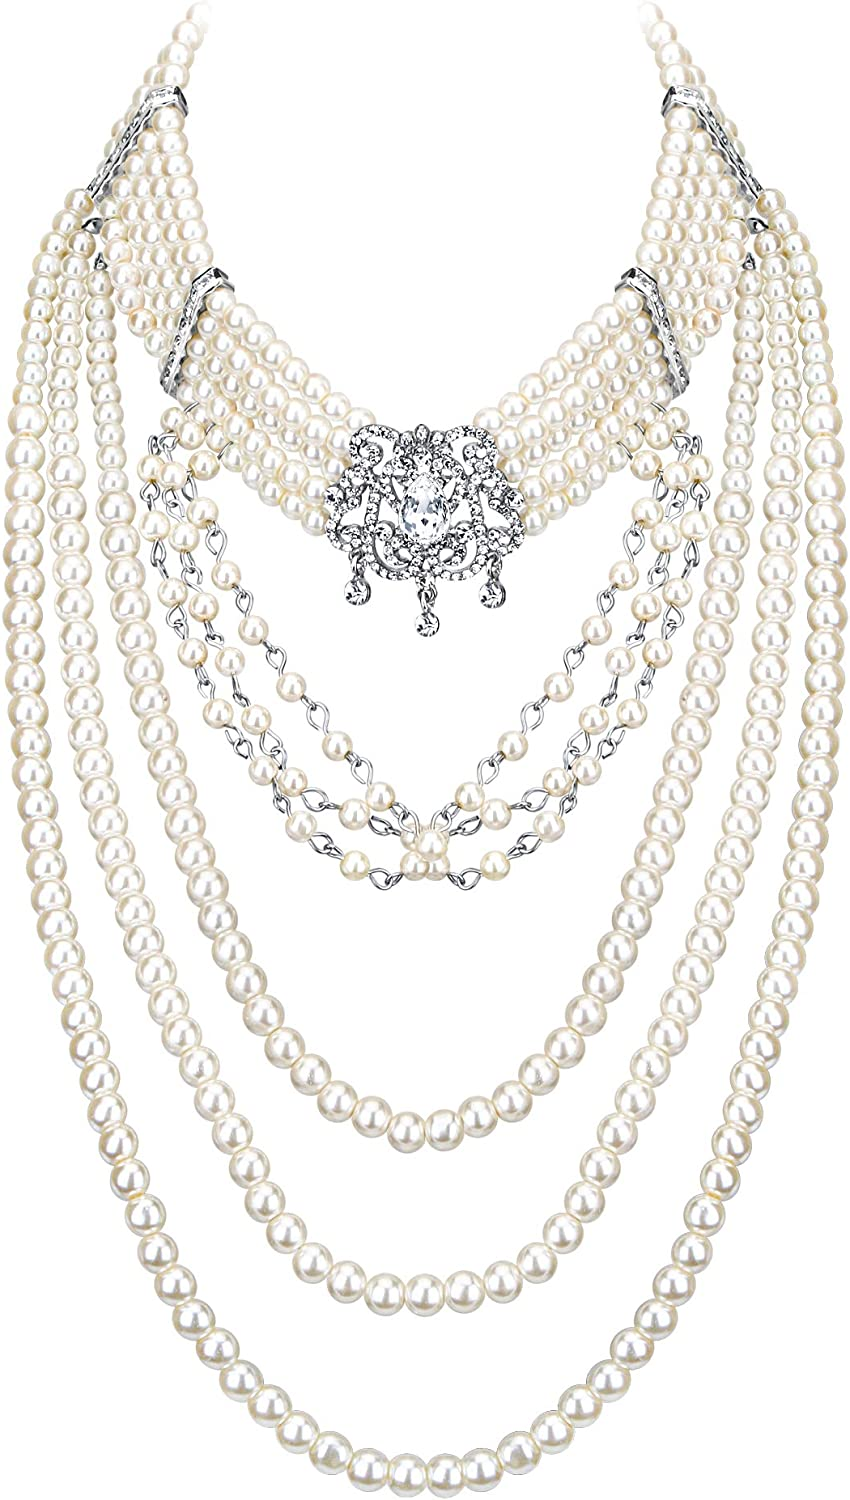 EVER FAITH Crystal Multi-Strand Layered Ivory Color Simulated Pearl Vintage Style Bib Collar Statement Necklace